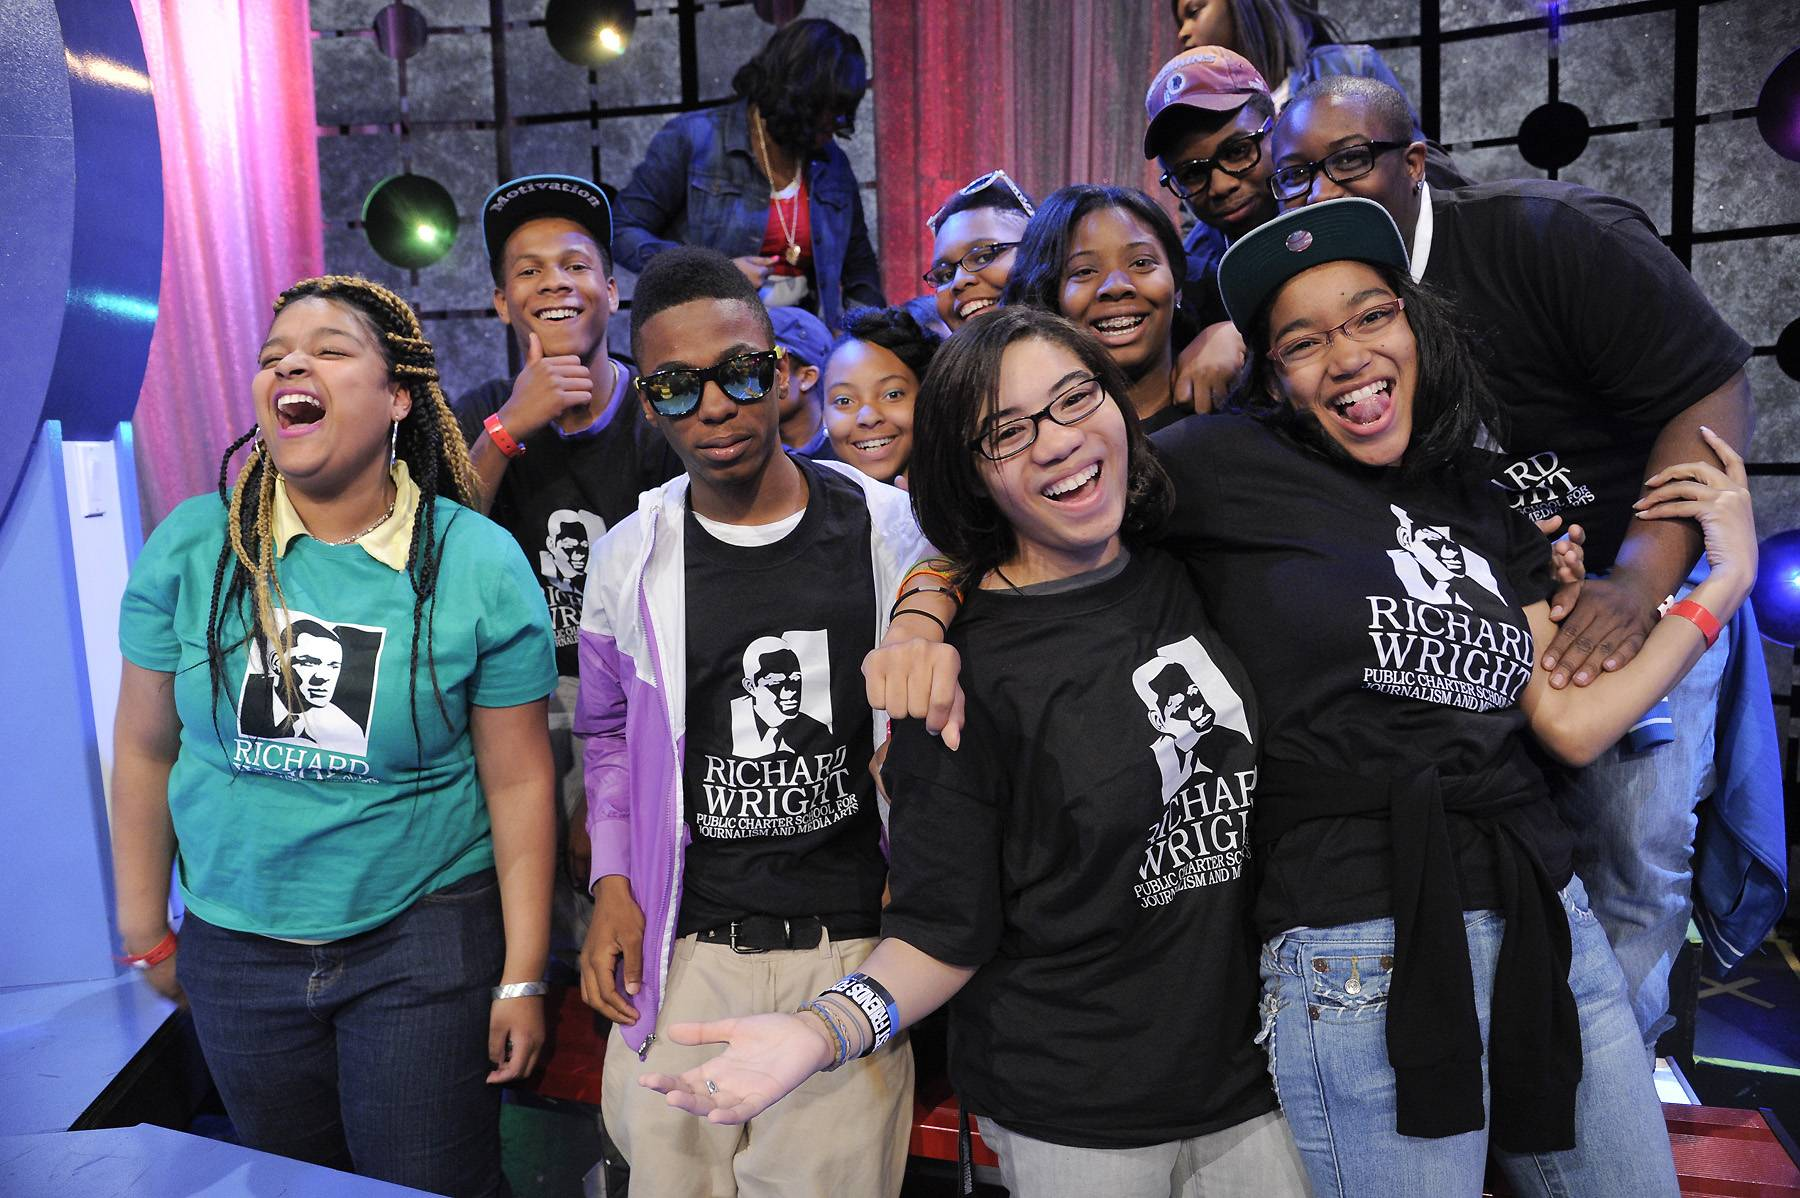 Study Hard - Students from Richard Wright School for Journalism and Media Arts at 106 & Park, April 9, 2012. (photo: John Ricard / BET)